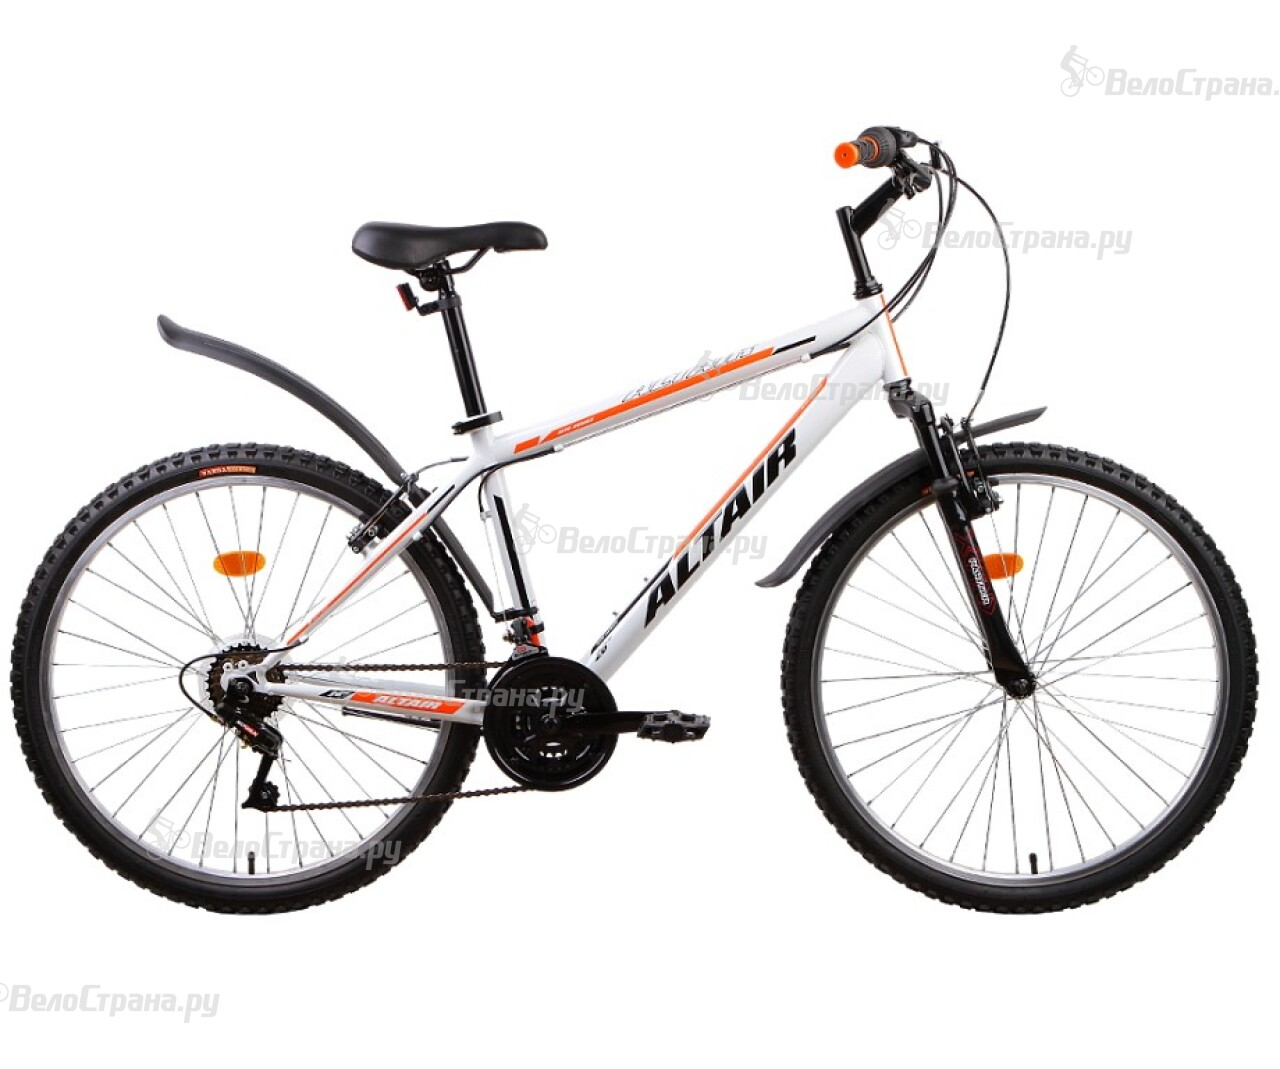 Велосипед Forward Altair MTB HT 26 (2015) купить